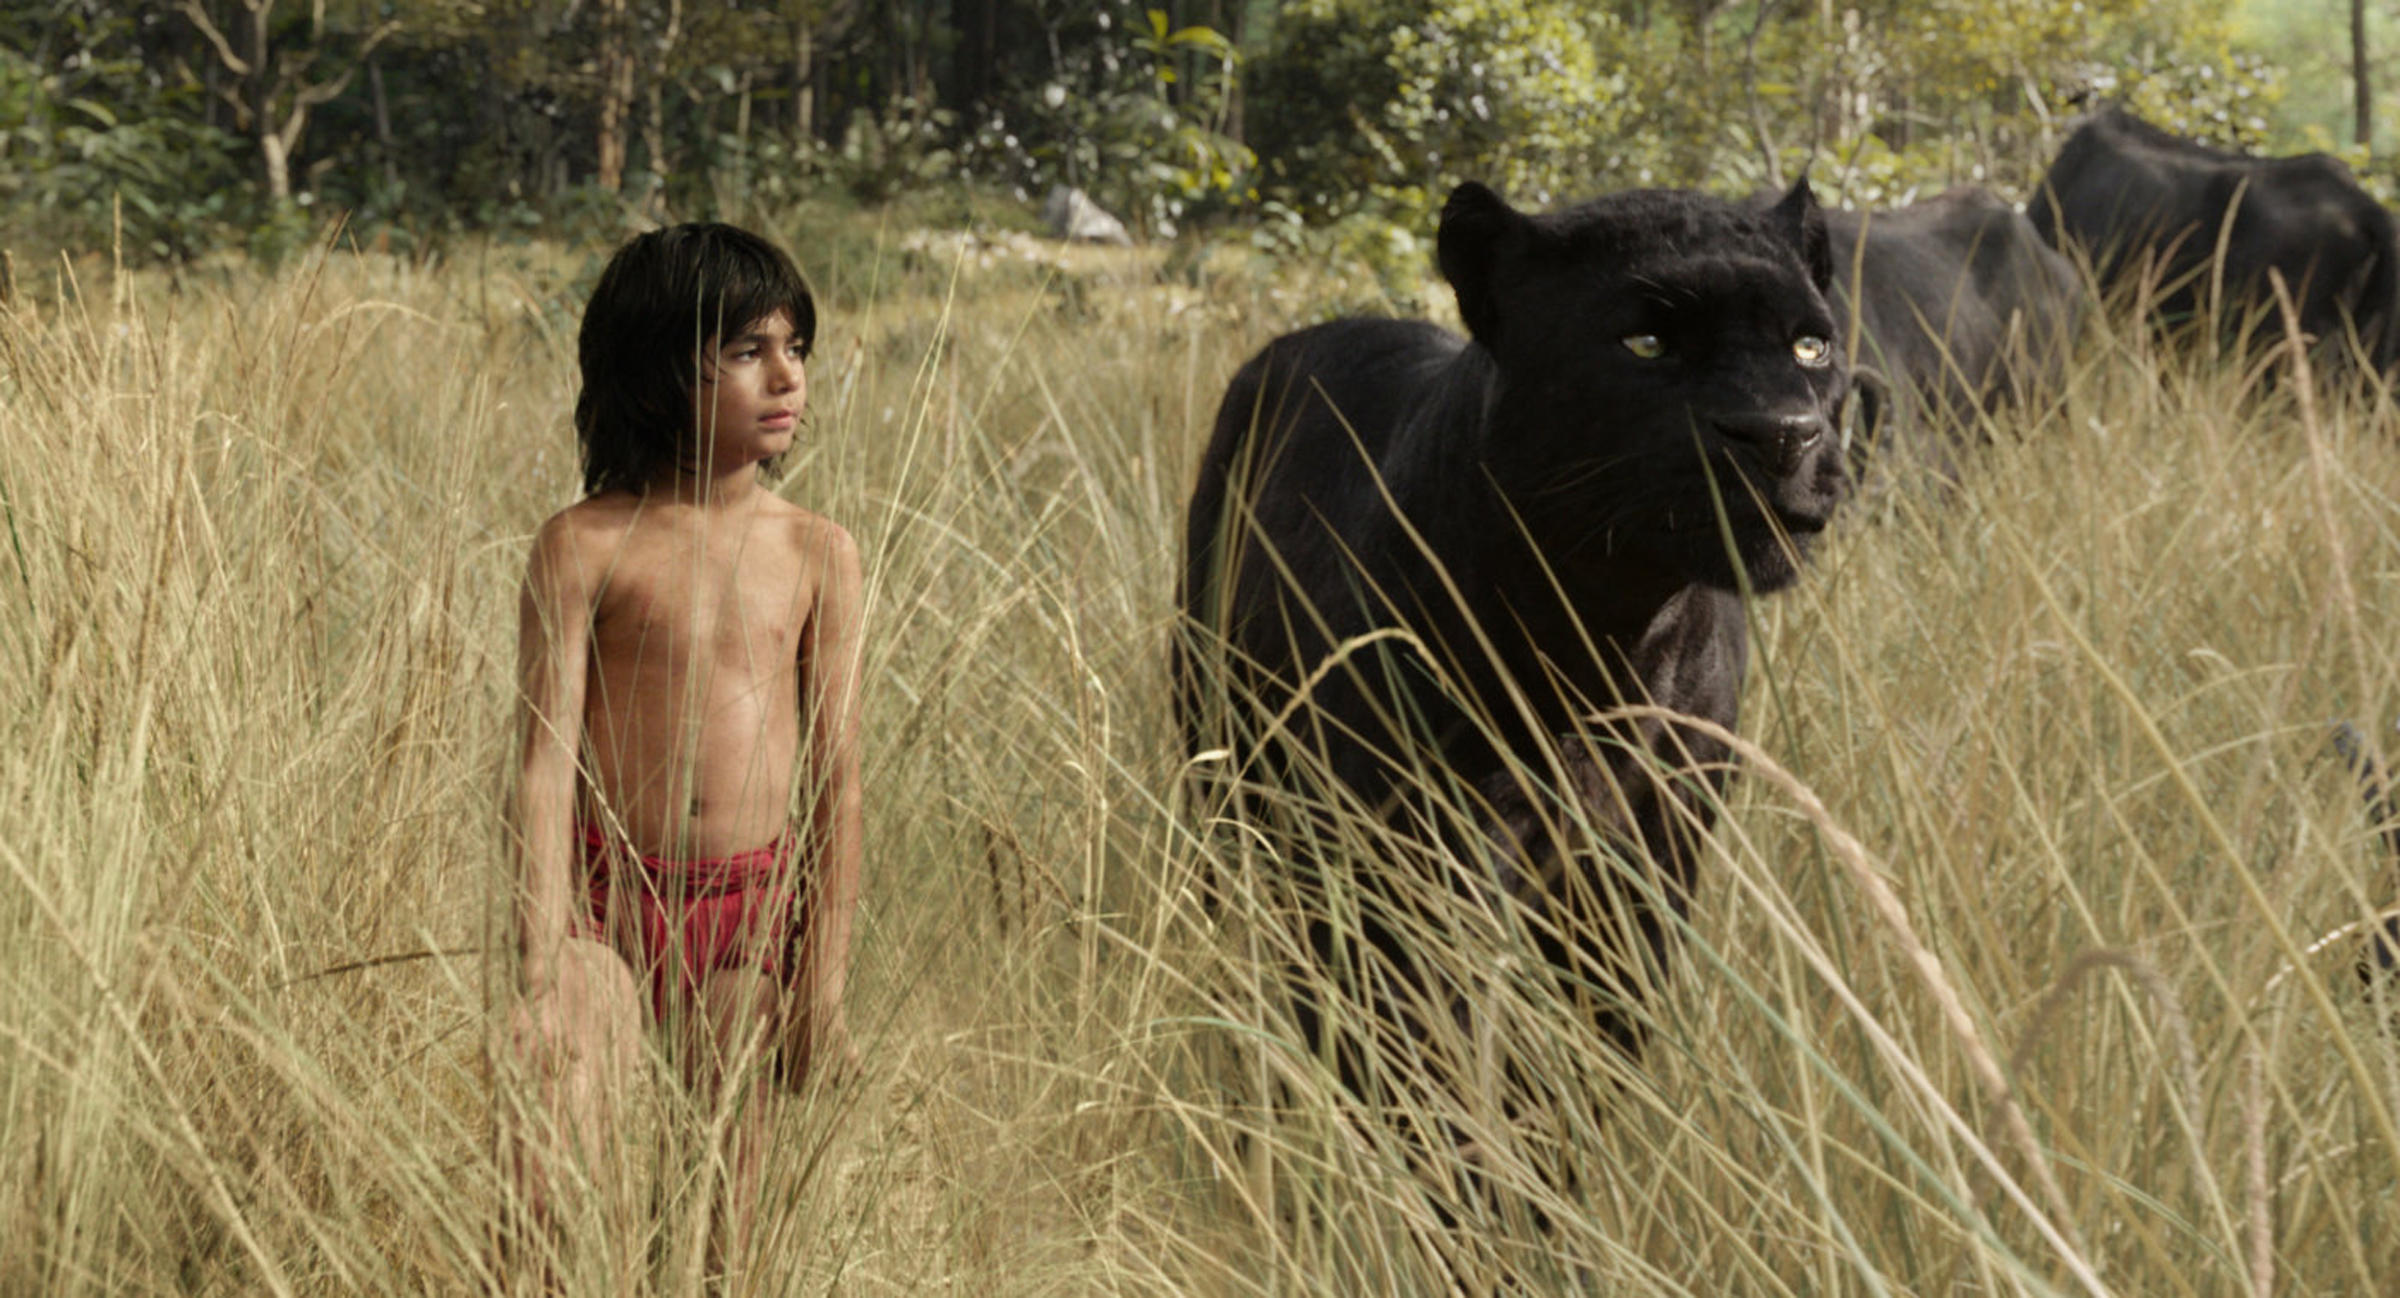 The Jungle Book is an upcoming American 3D comedy-adventure fantasy film directed by Jon Favreau, written by Justin Marks, and p